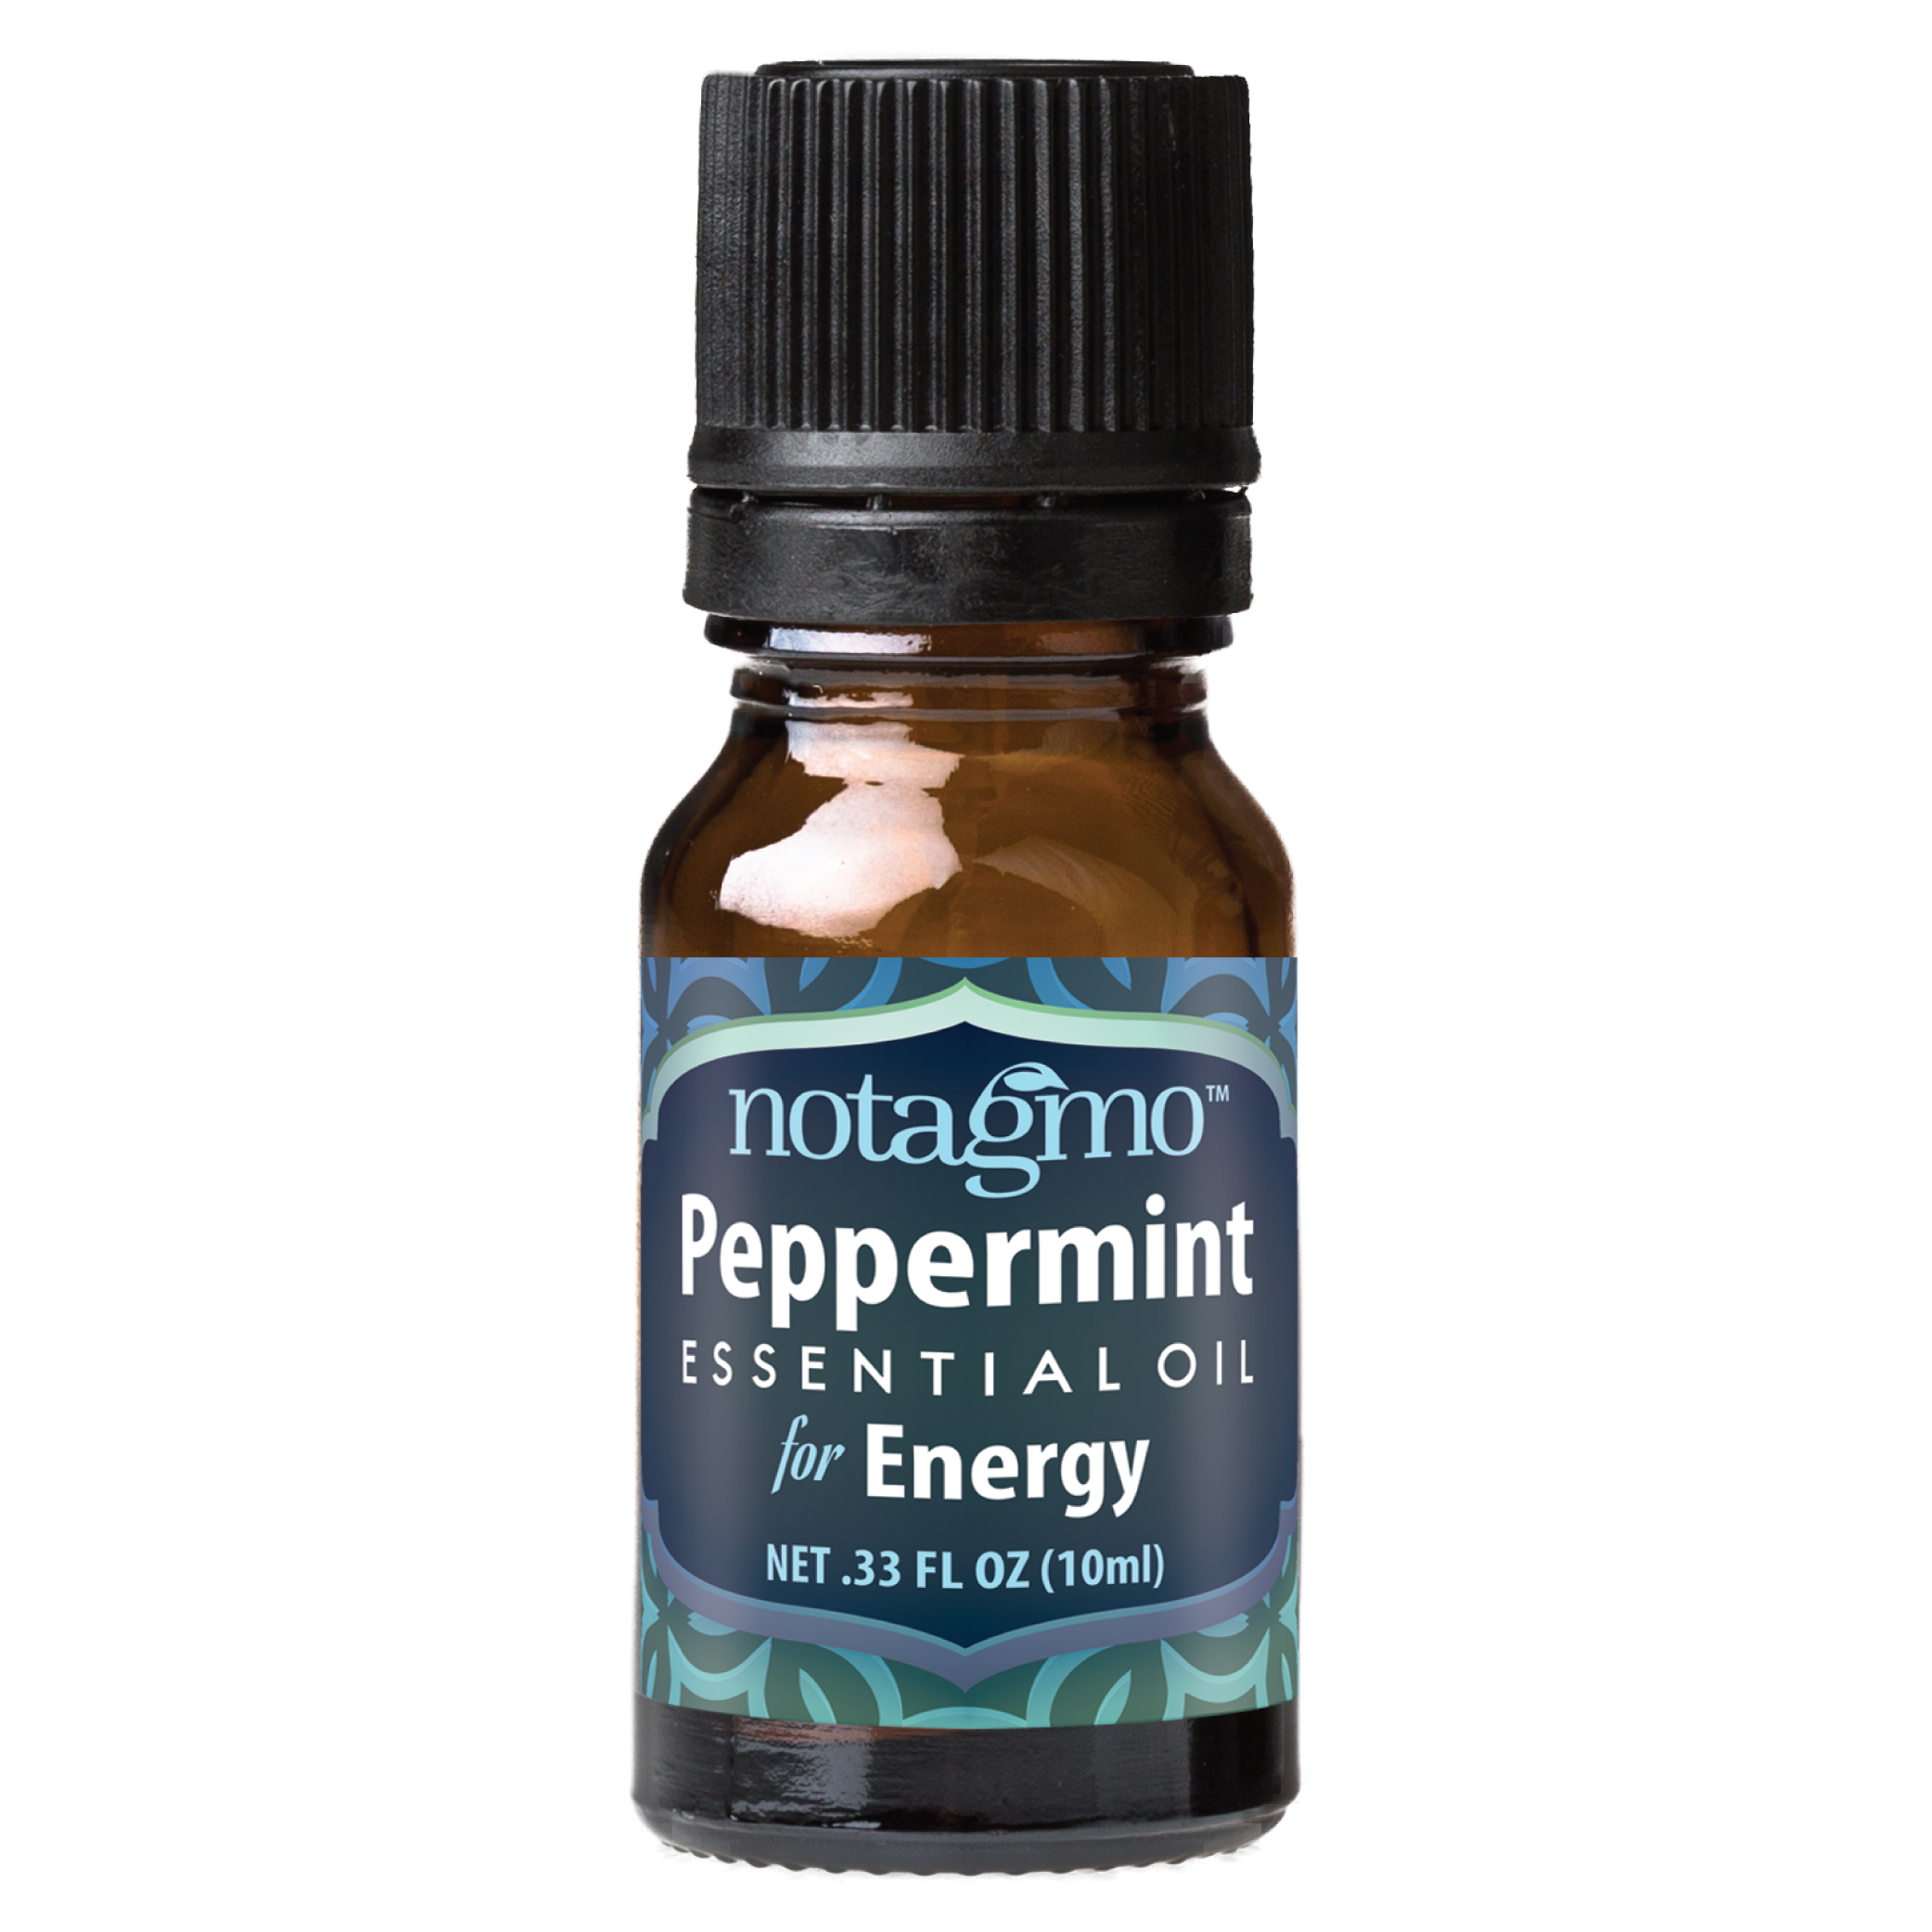 Peppermint Essential Oil 10ml: Energy